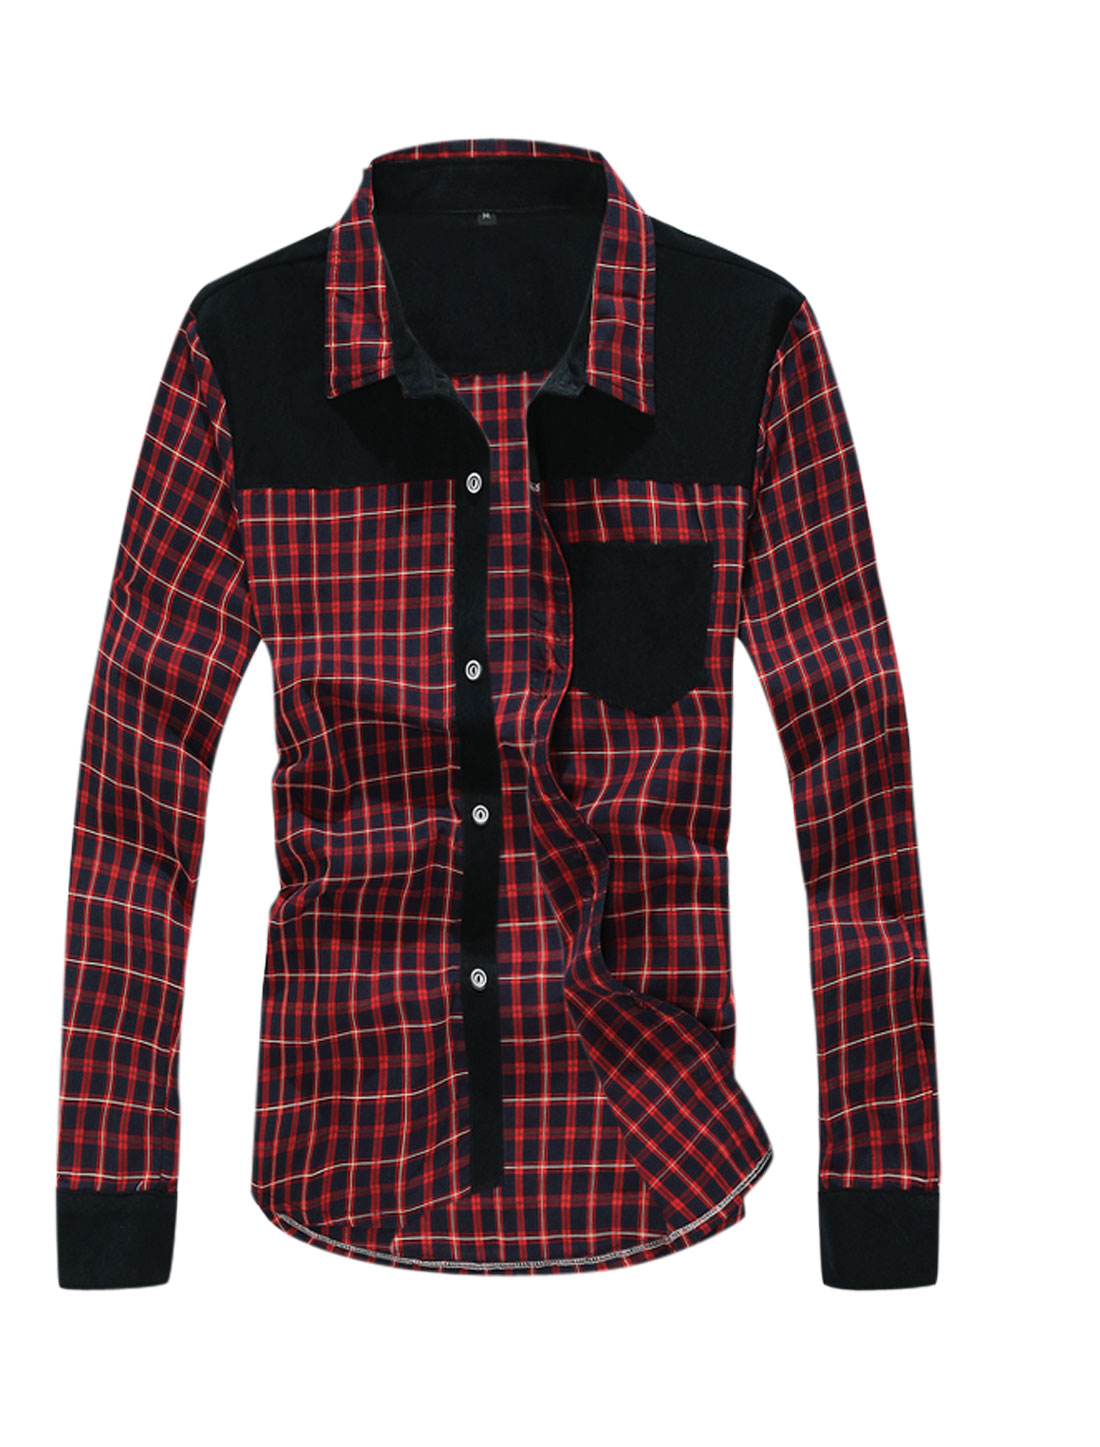 Men Checkered Pattern Single Breasted Chest Pocket Shirt Red Navy Blue M